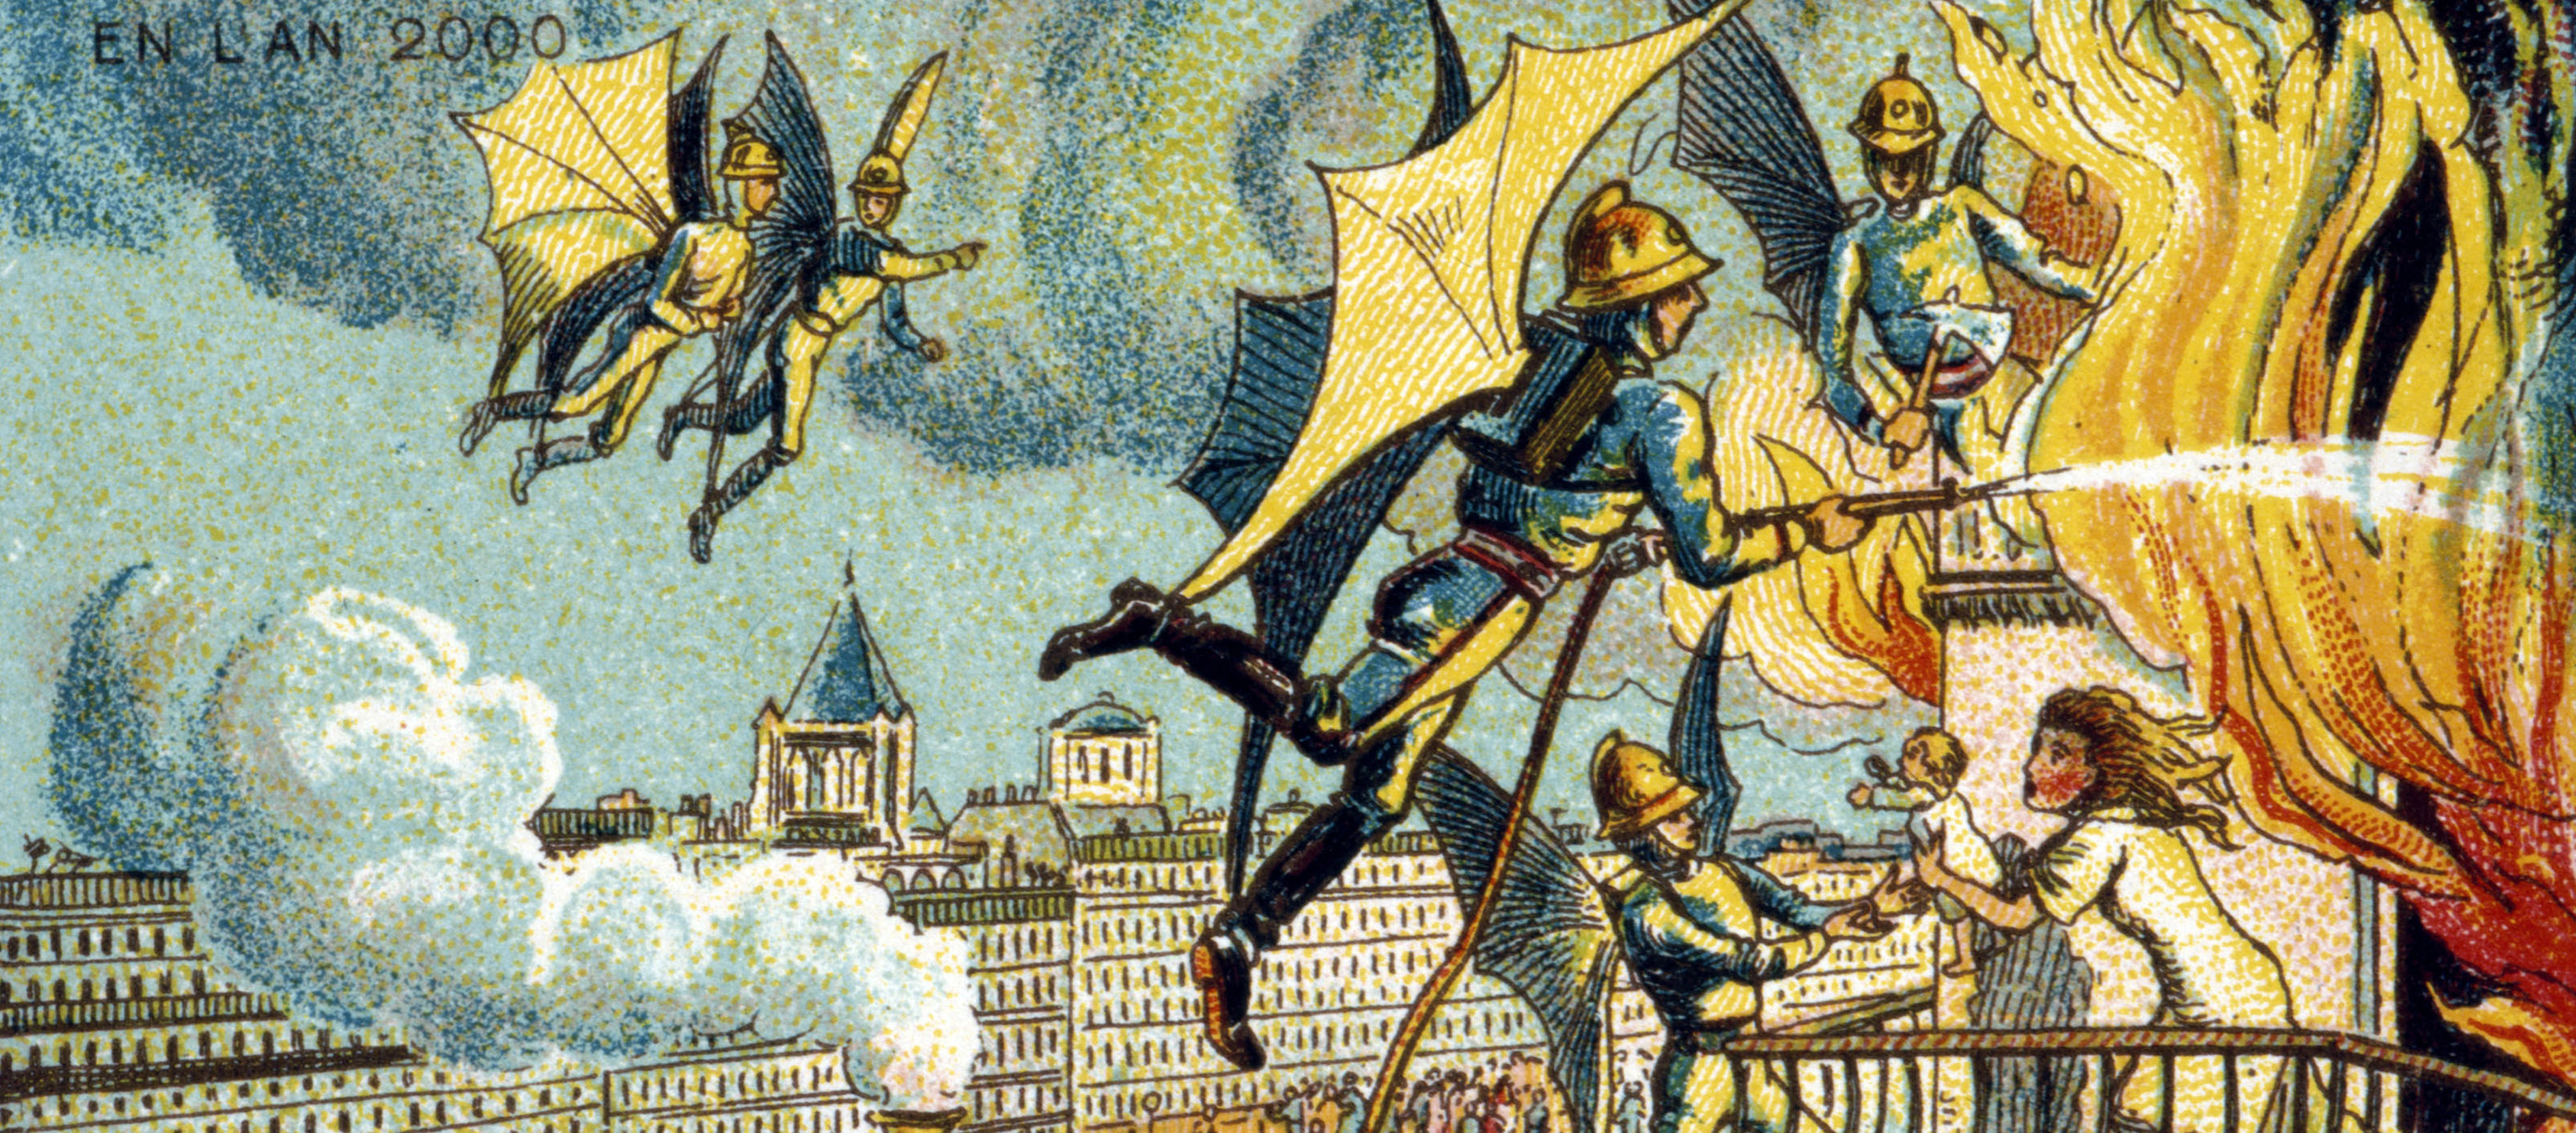 """Flying Fireman,"" color lithograph from the series Visions of the Year 2000, by Jean-Marc Côté, 1899."